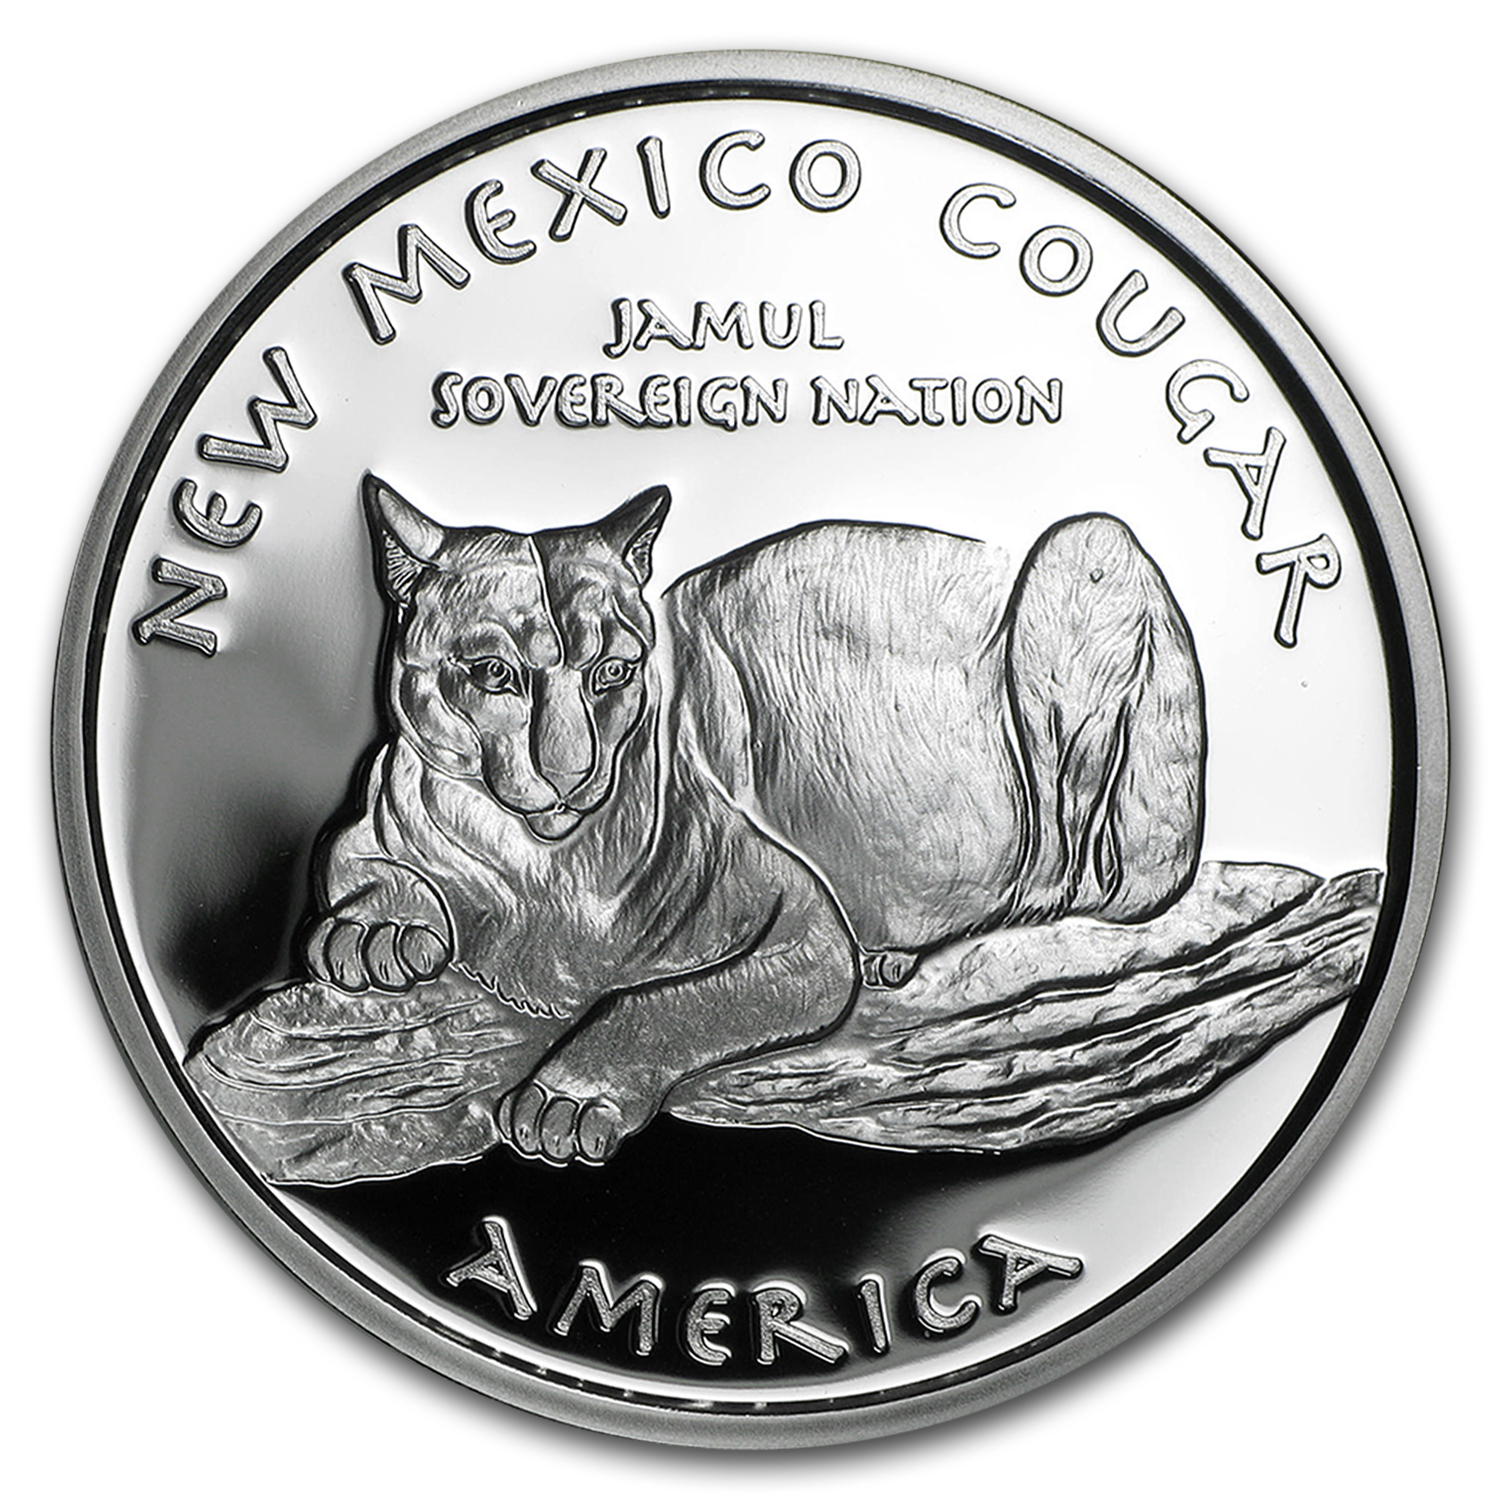 2015 1 oz Silver Proof NAM State Dollars New Mexico Navajo